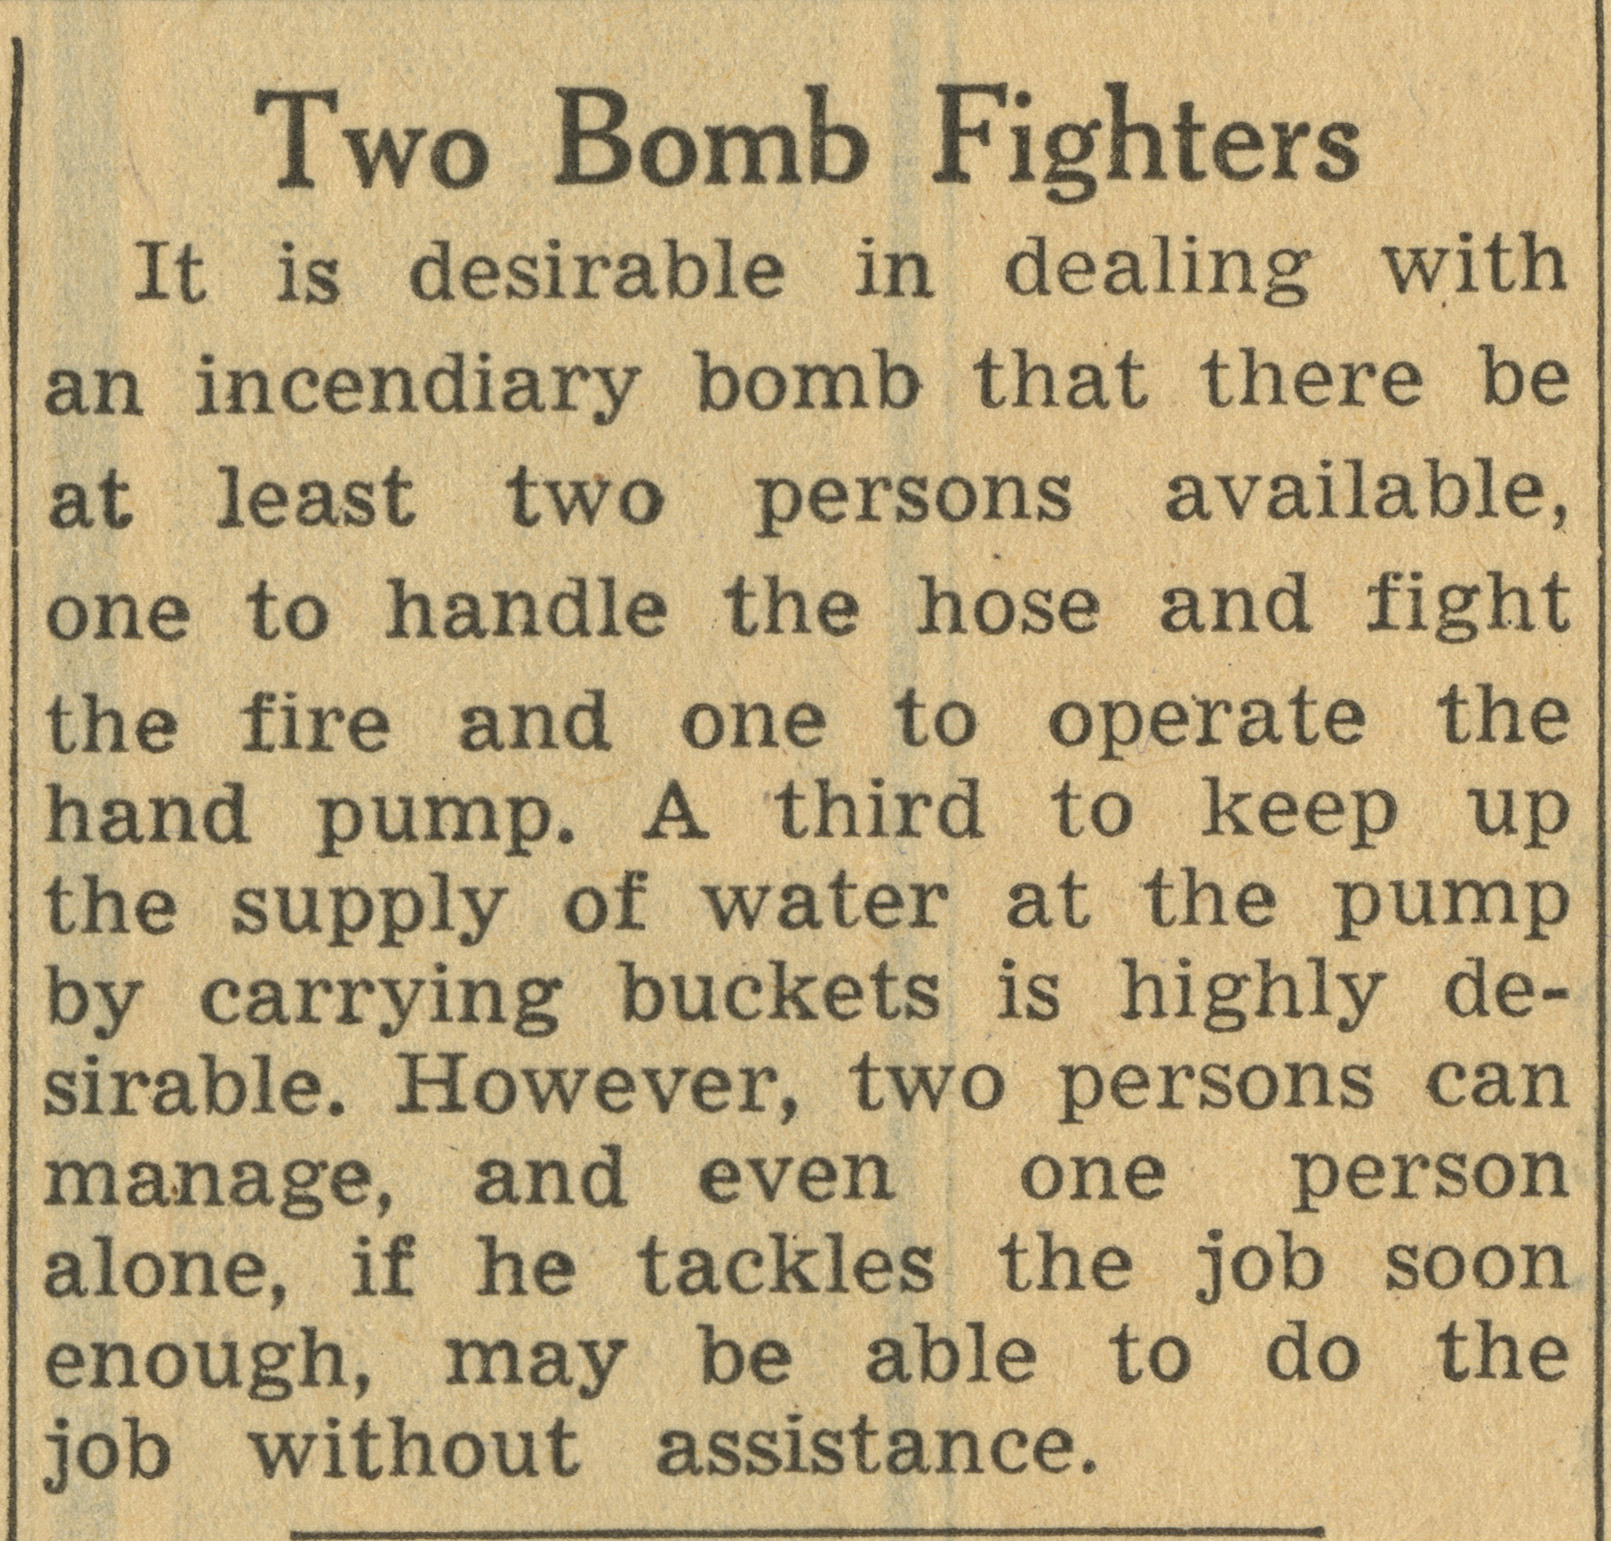 Two Bomb Fighters image